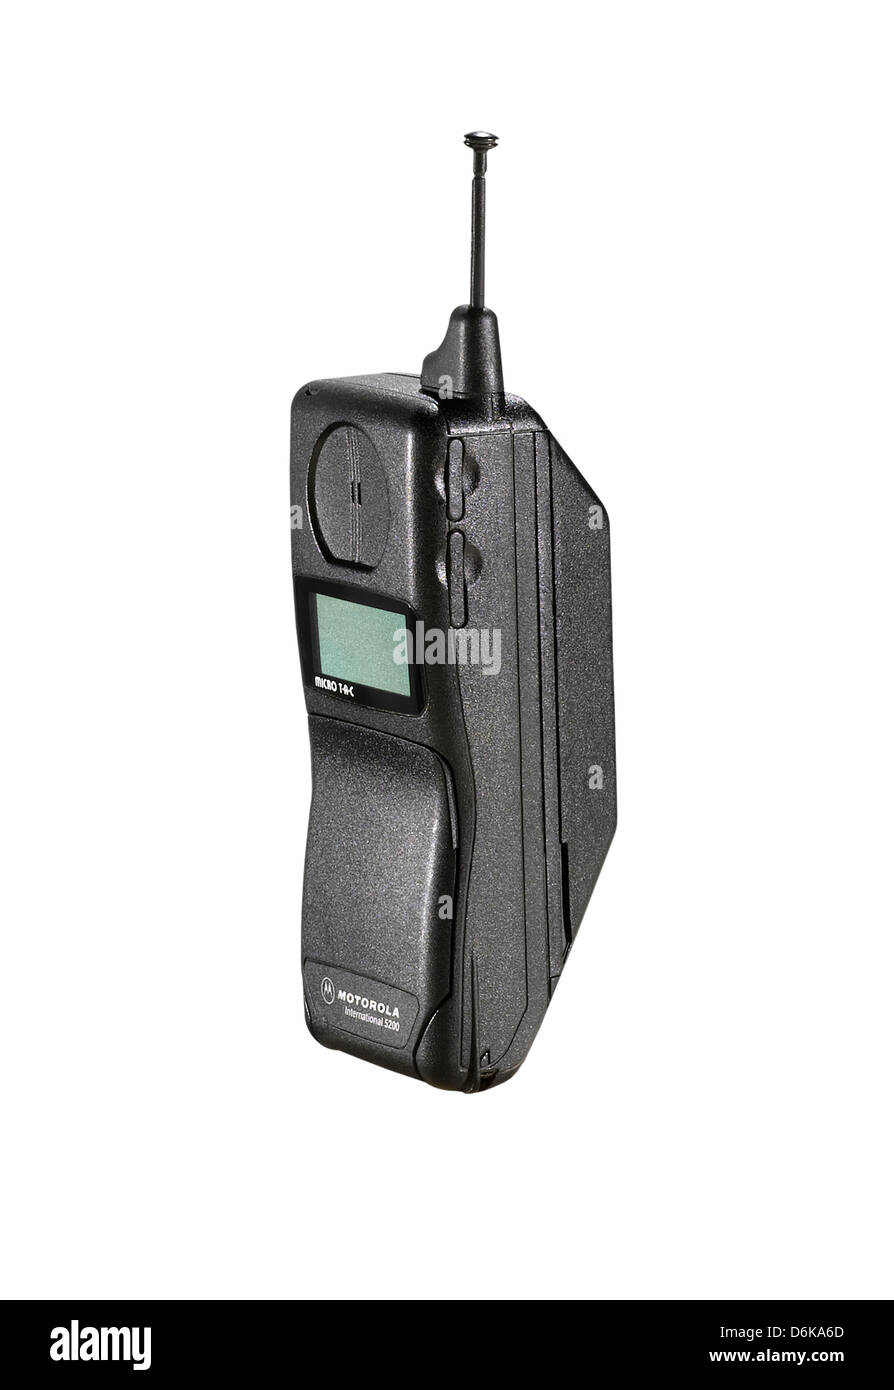 An old style Motorola flip mobile phone - Stock Image